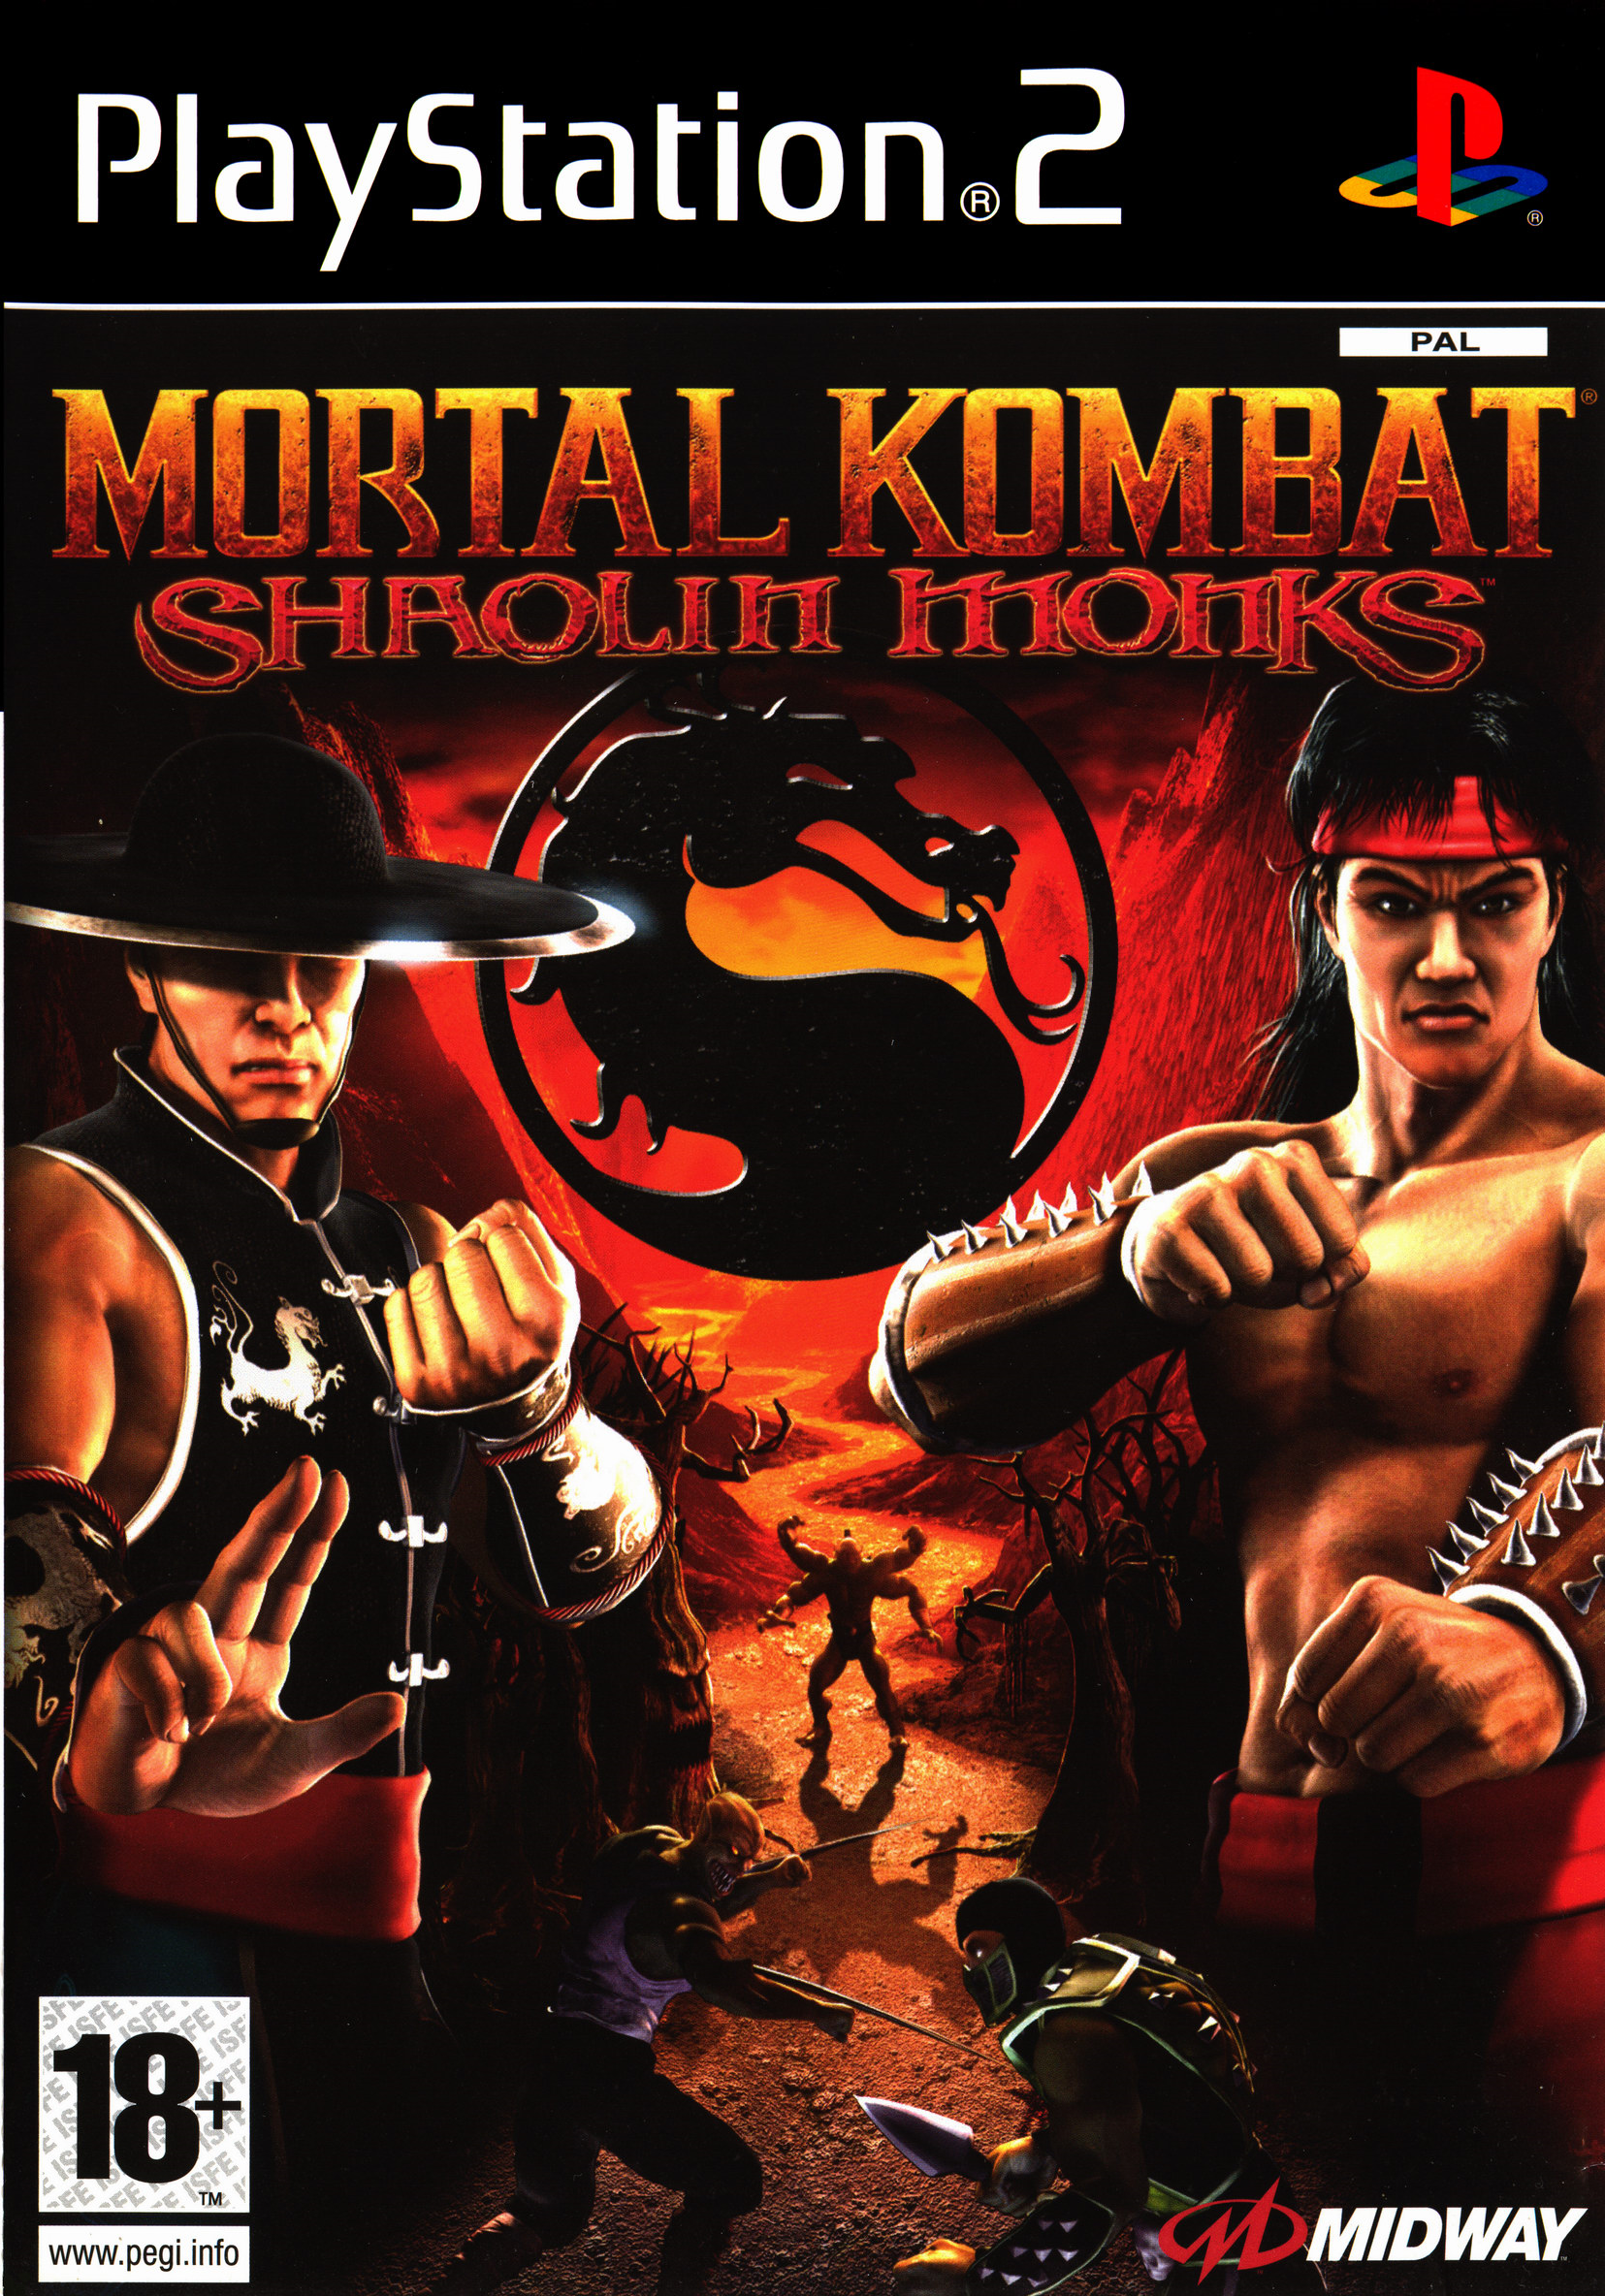 Mortal kombat shaolin monks kitana - photo#18